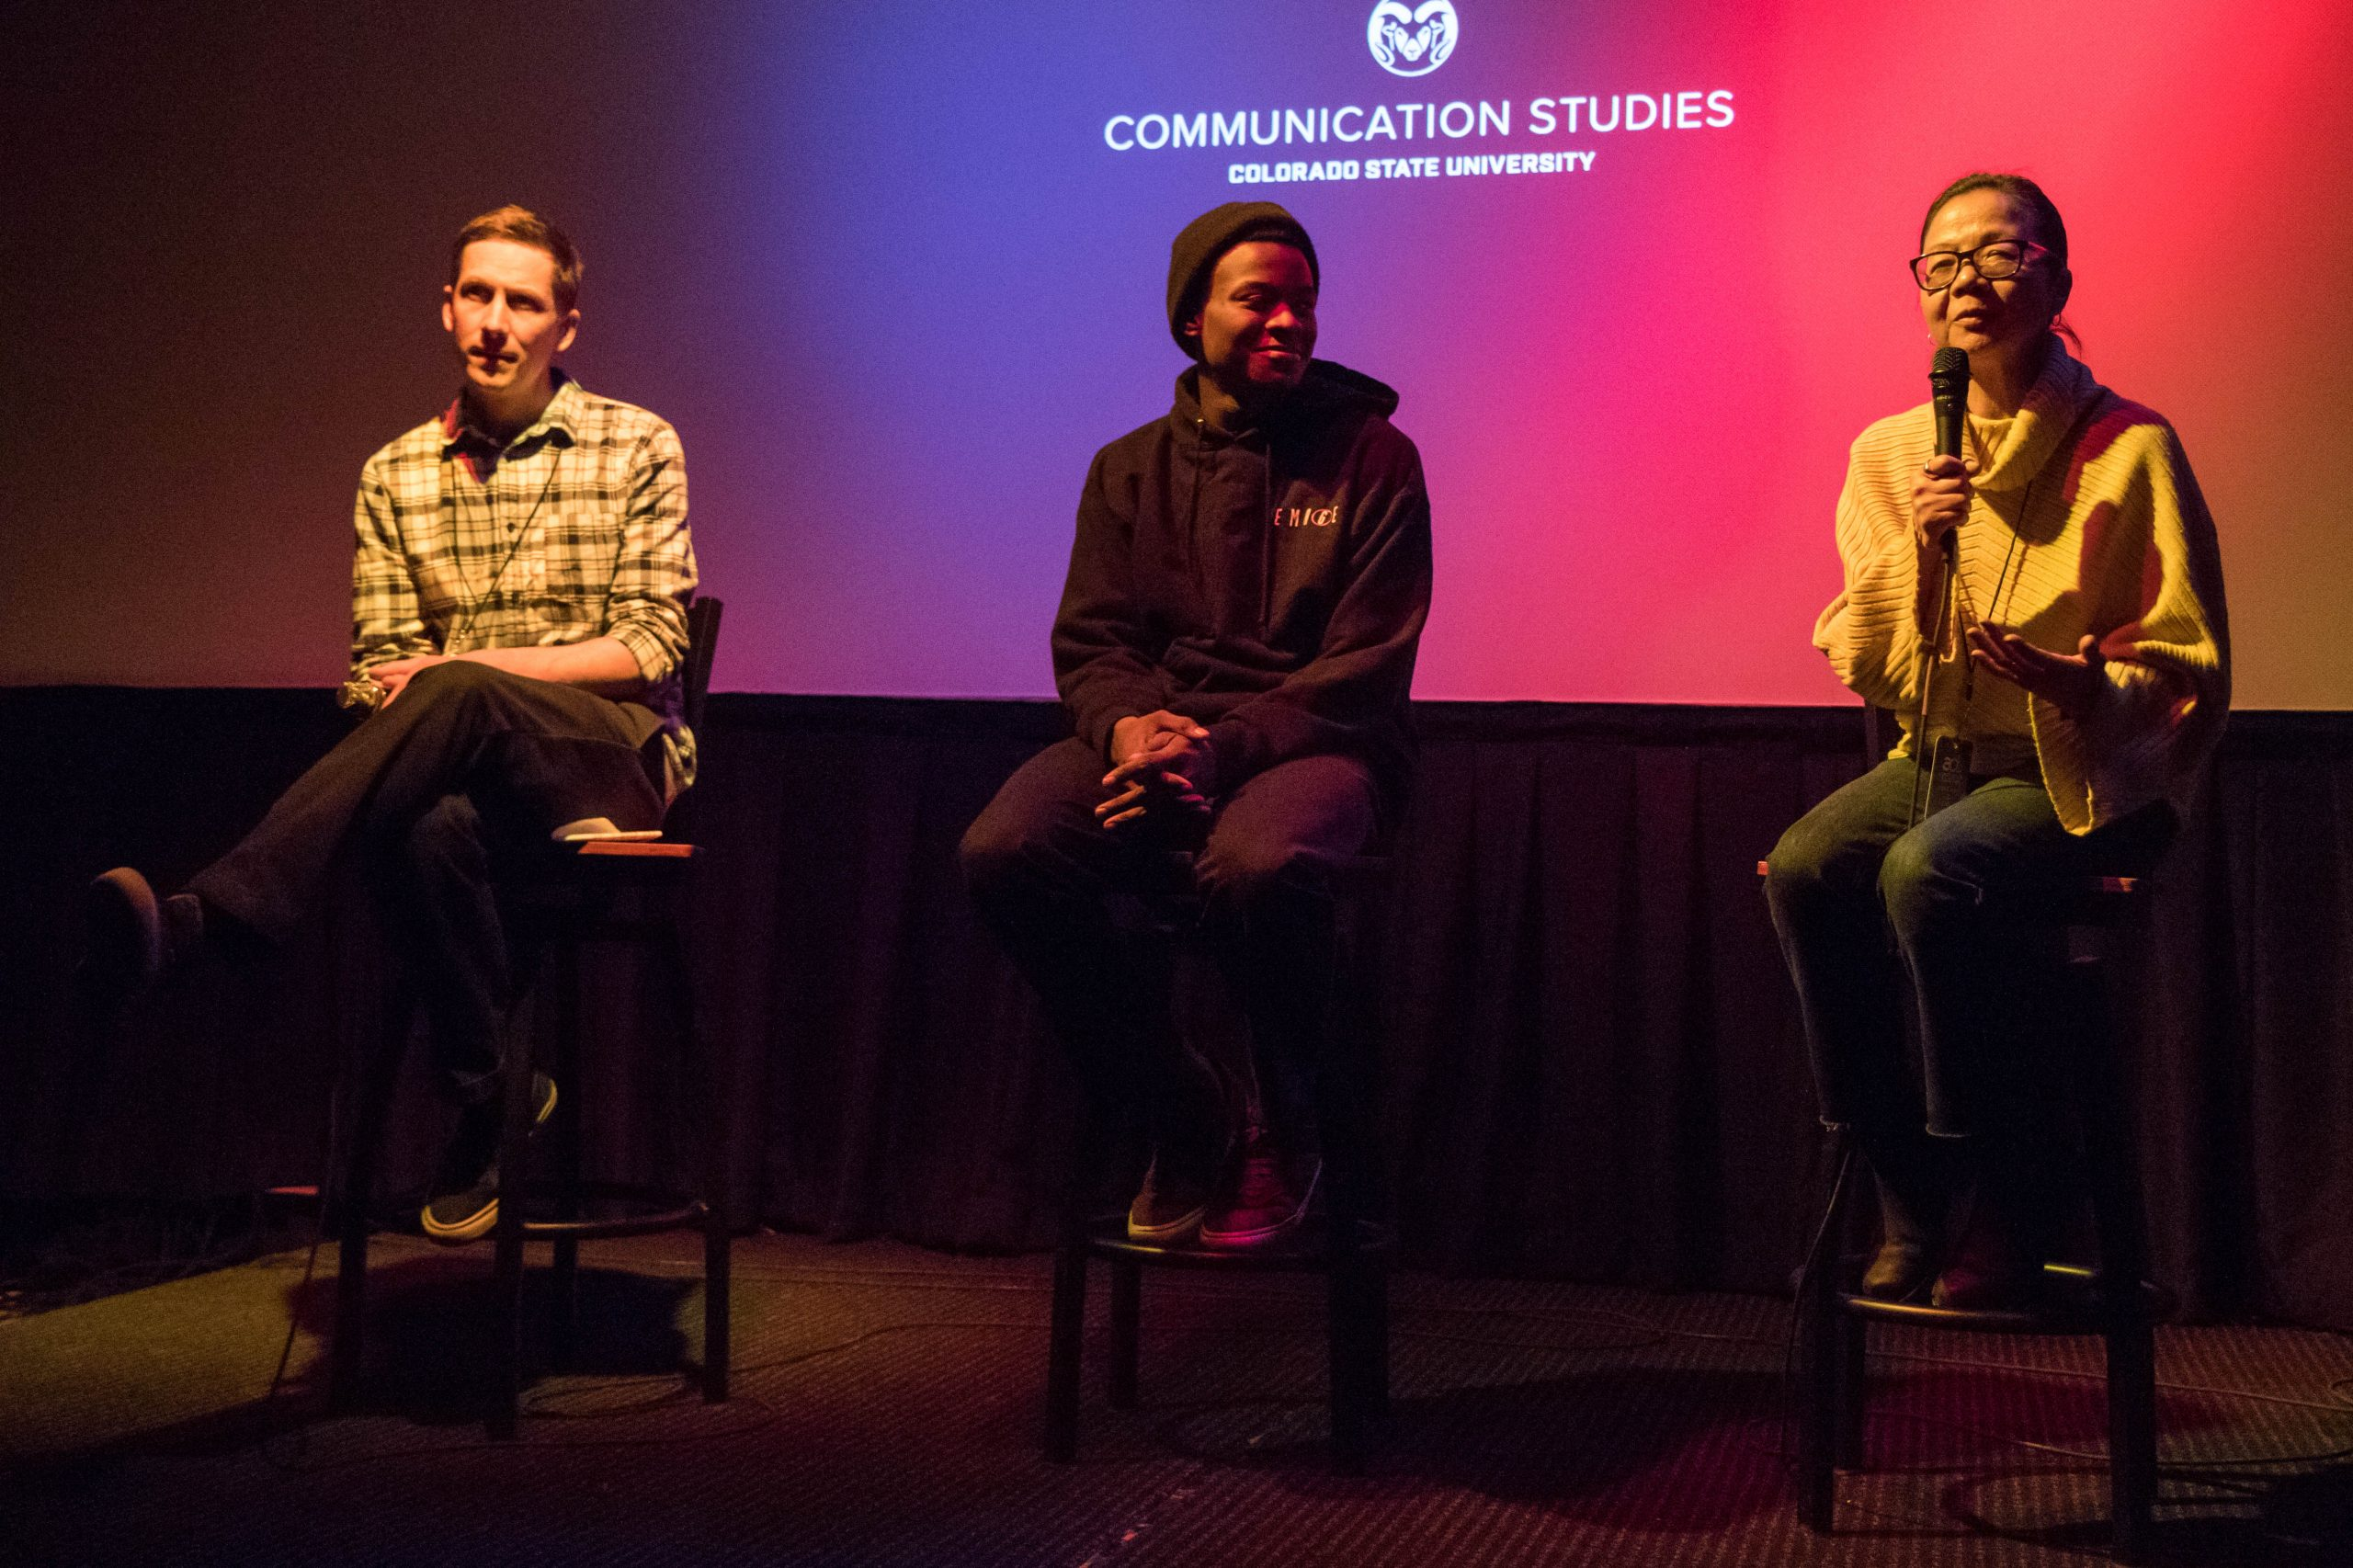 Act Film Festival Minding The Gap Is An Ambitious Haunting Look At Generations Of Familial Dysfunction The Rocky Mountain Collegian